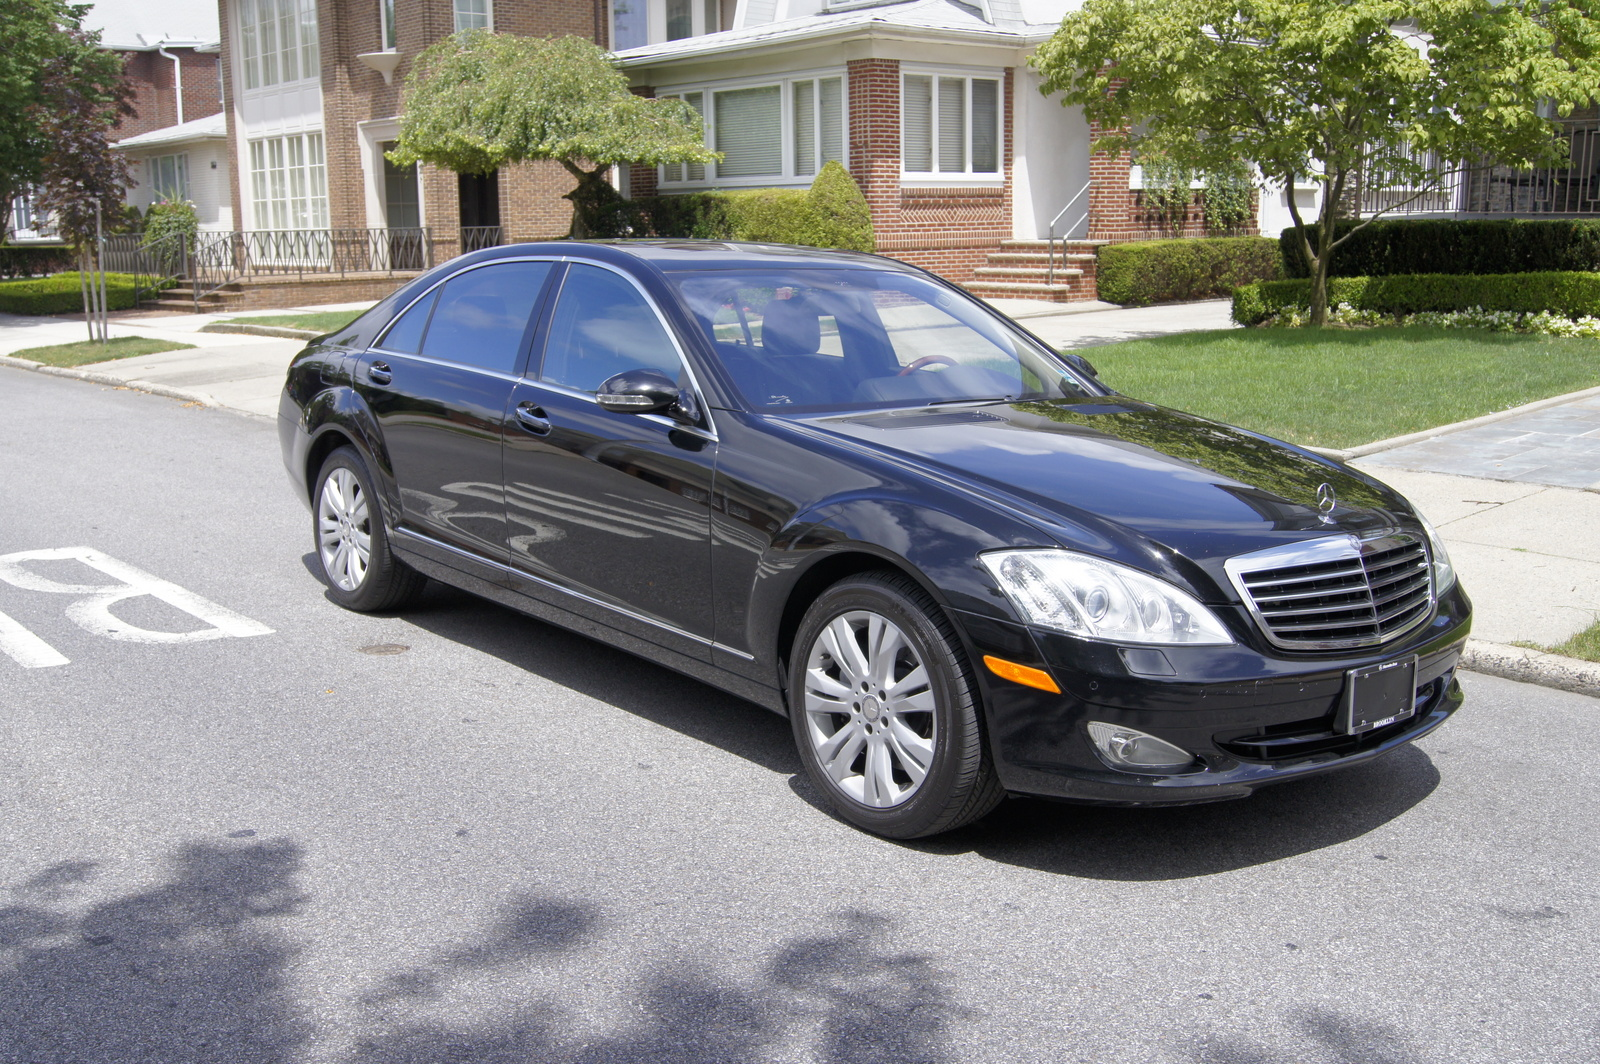 2009 mercedes benz s class pictures cargurus for Mercedes benz s550 2009